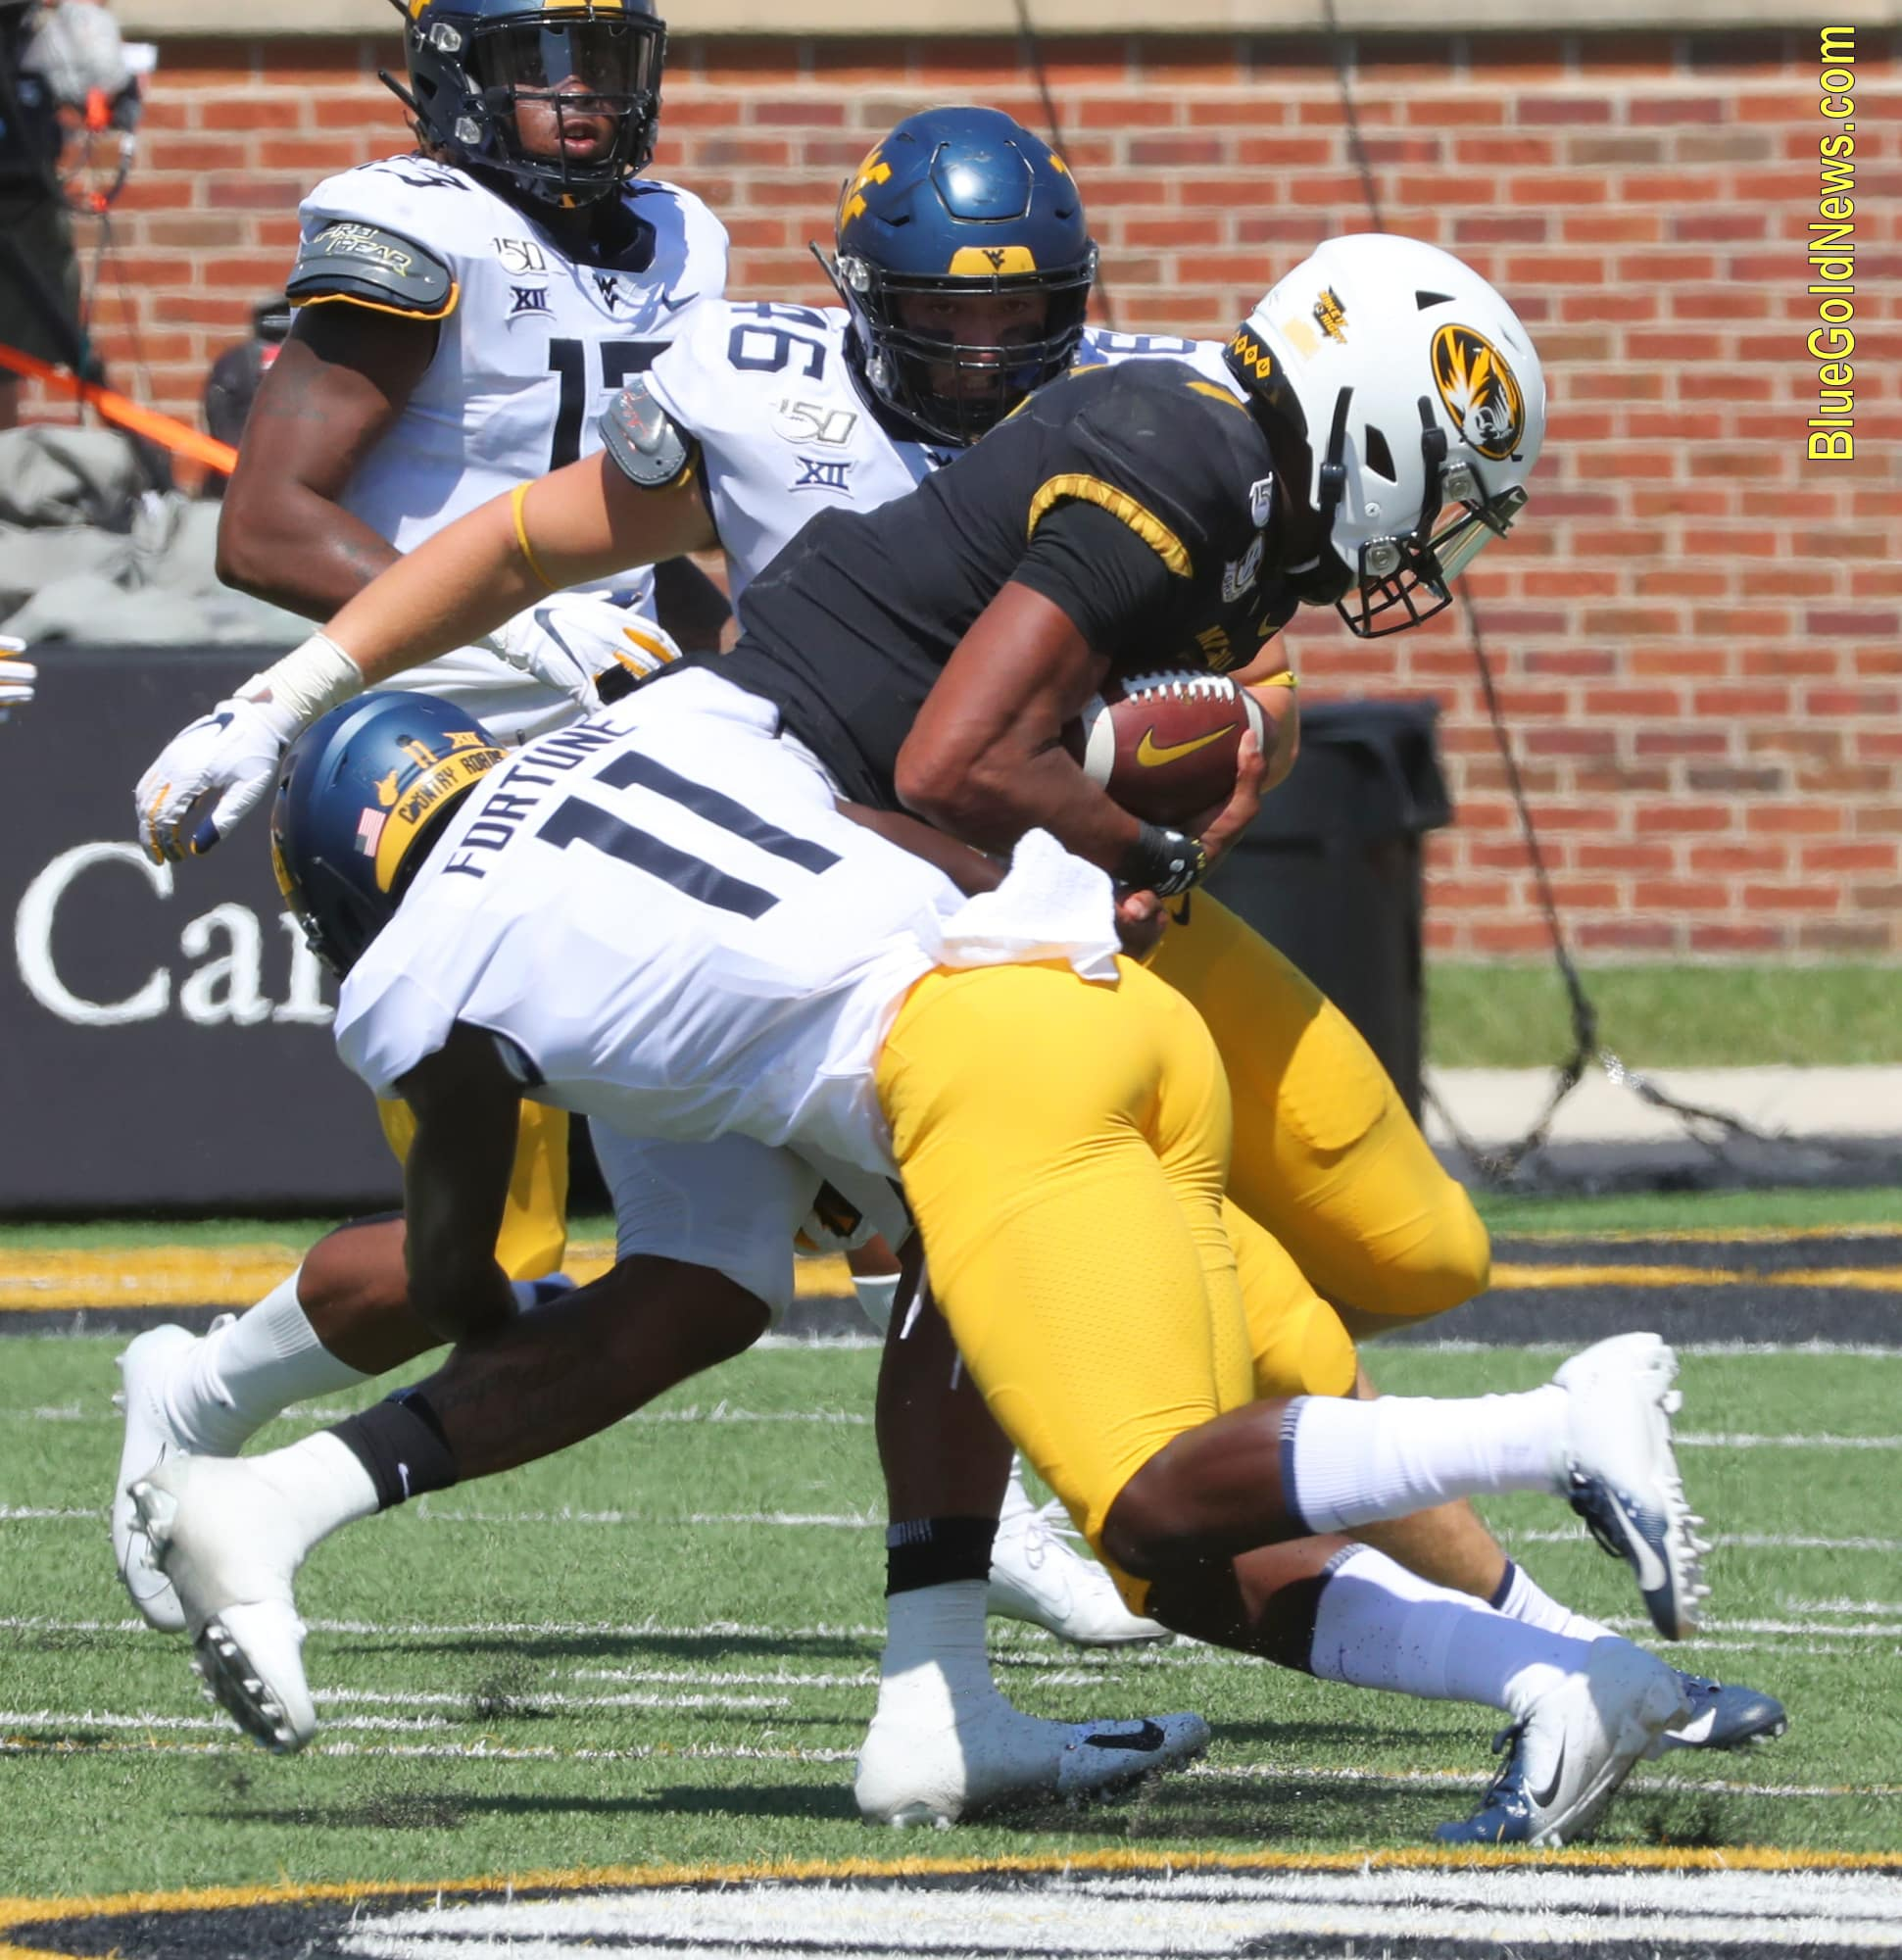 West Virginia cornerback Nicktroy Fortune (11) makes a tackle while Reese Donahue (46) moves in to assist